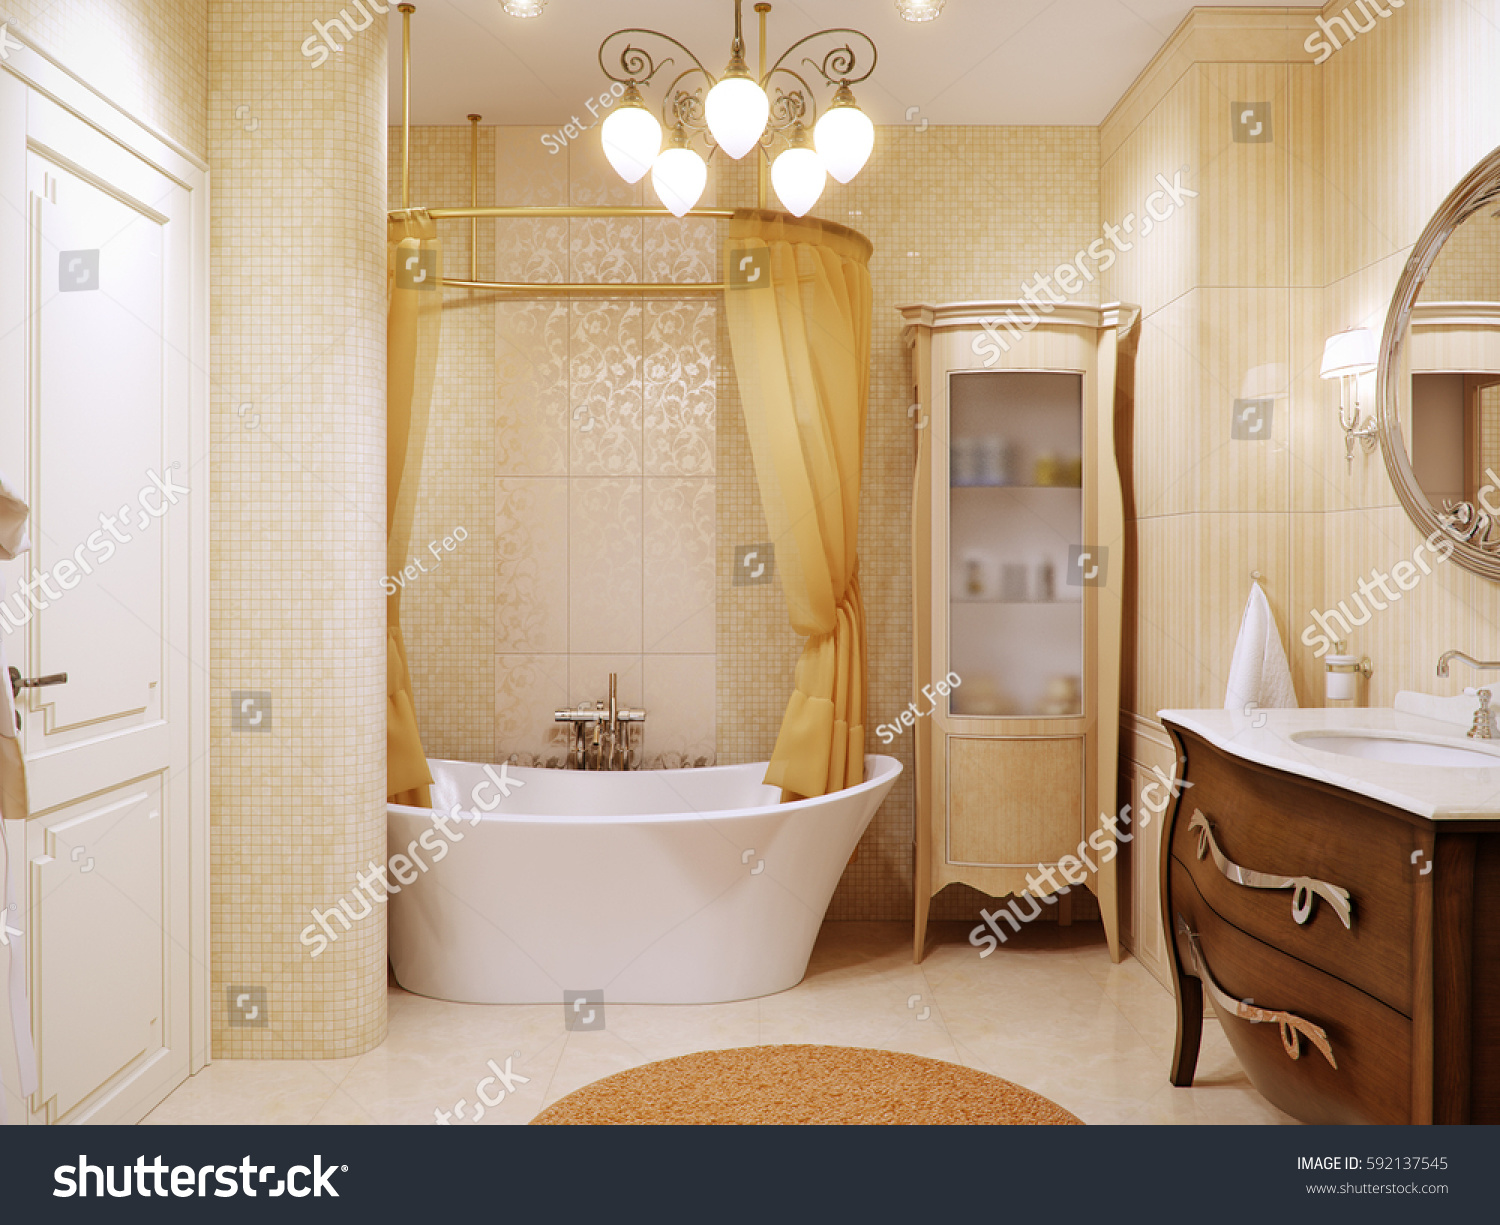 Interior Design In Classic Style With Beige Tiles D Render 592137545